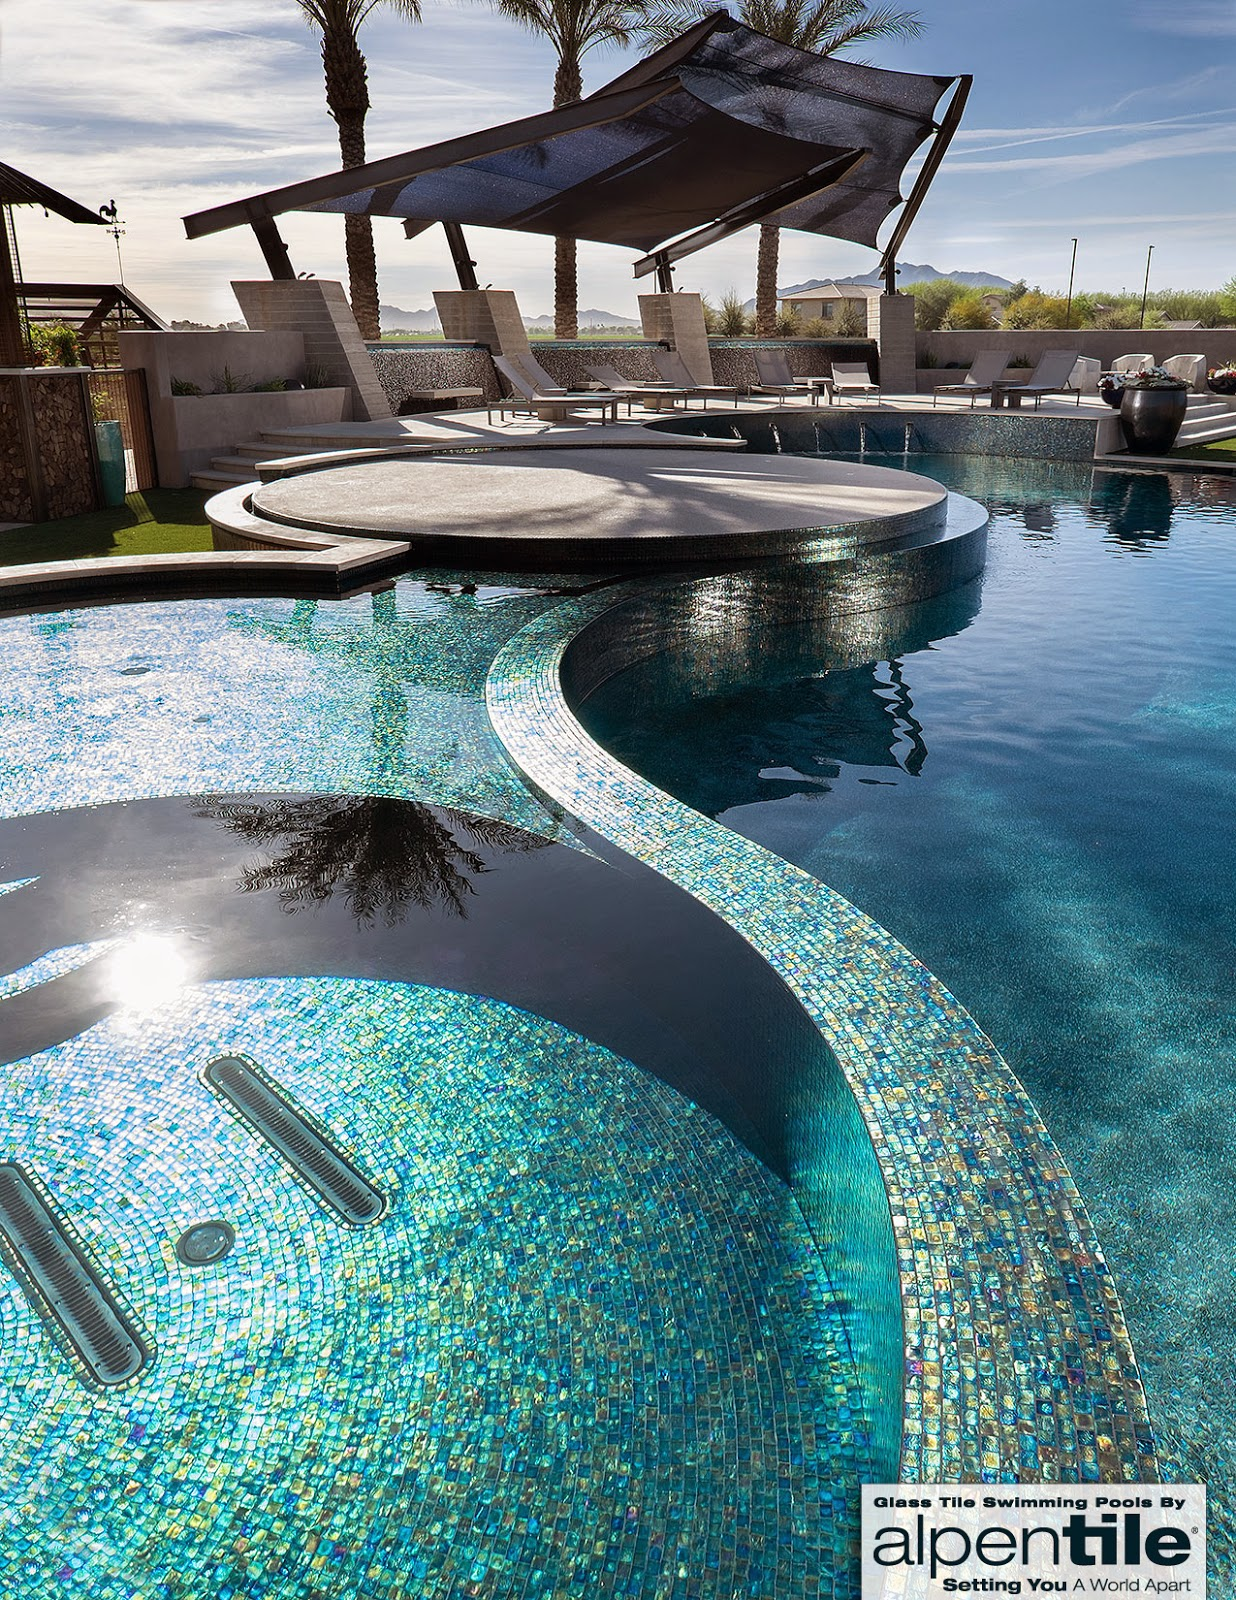 Alpentile Glass Tile Swimming Pools: This Glass Tile ...